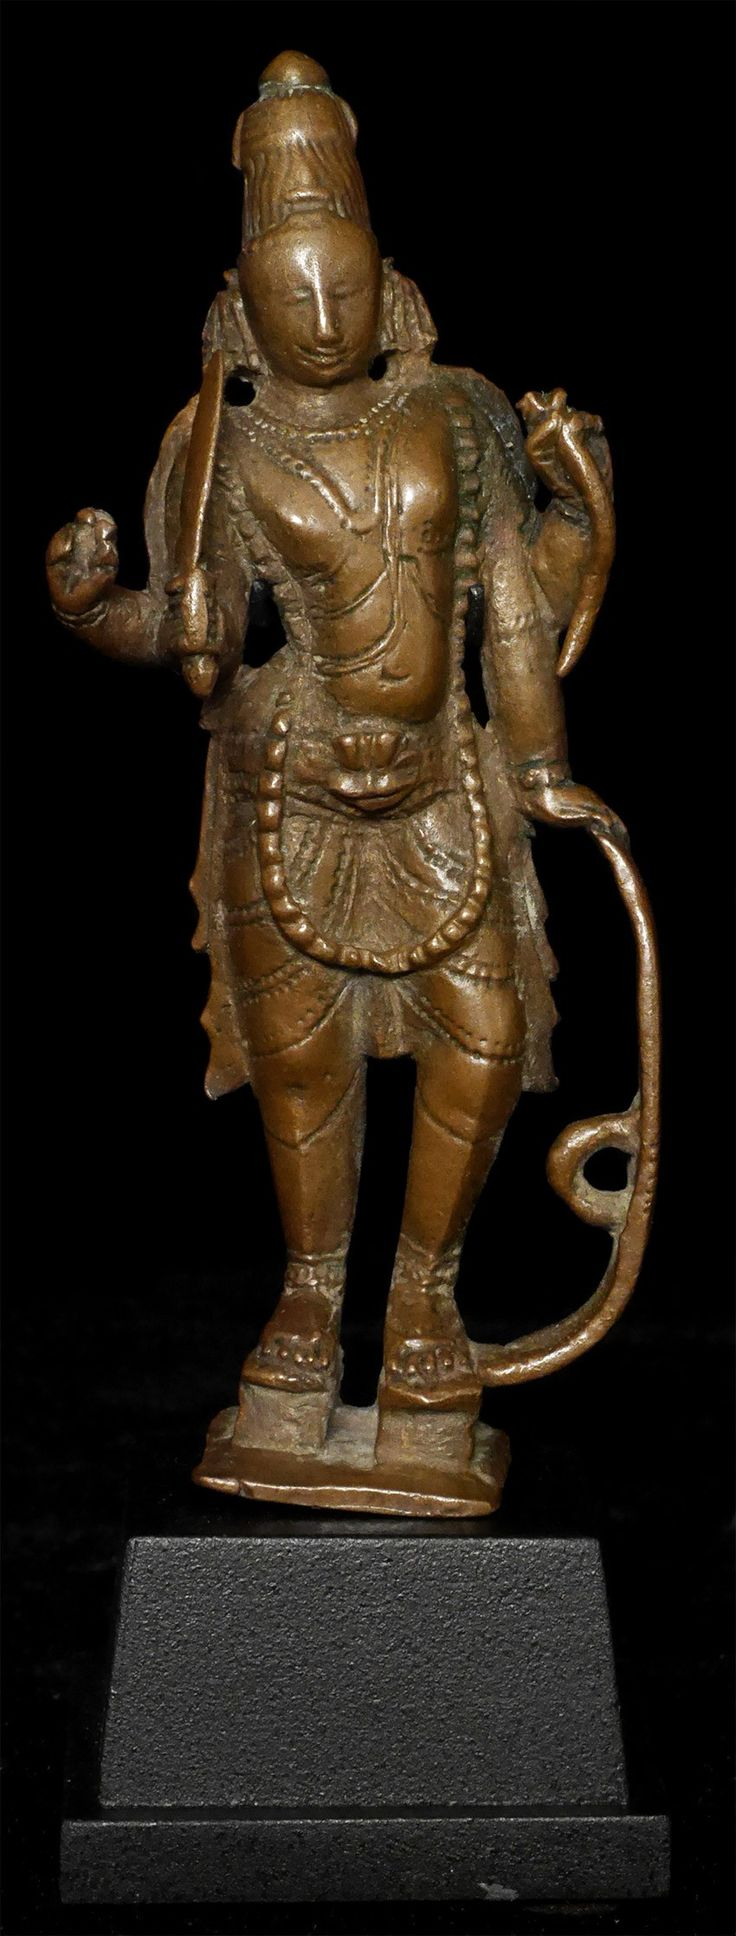 Very fine 17/18thC (likely earlier) standing Hindu deity Virabhadra, a form or avatar of Shiva.